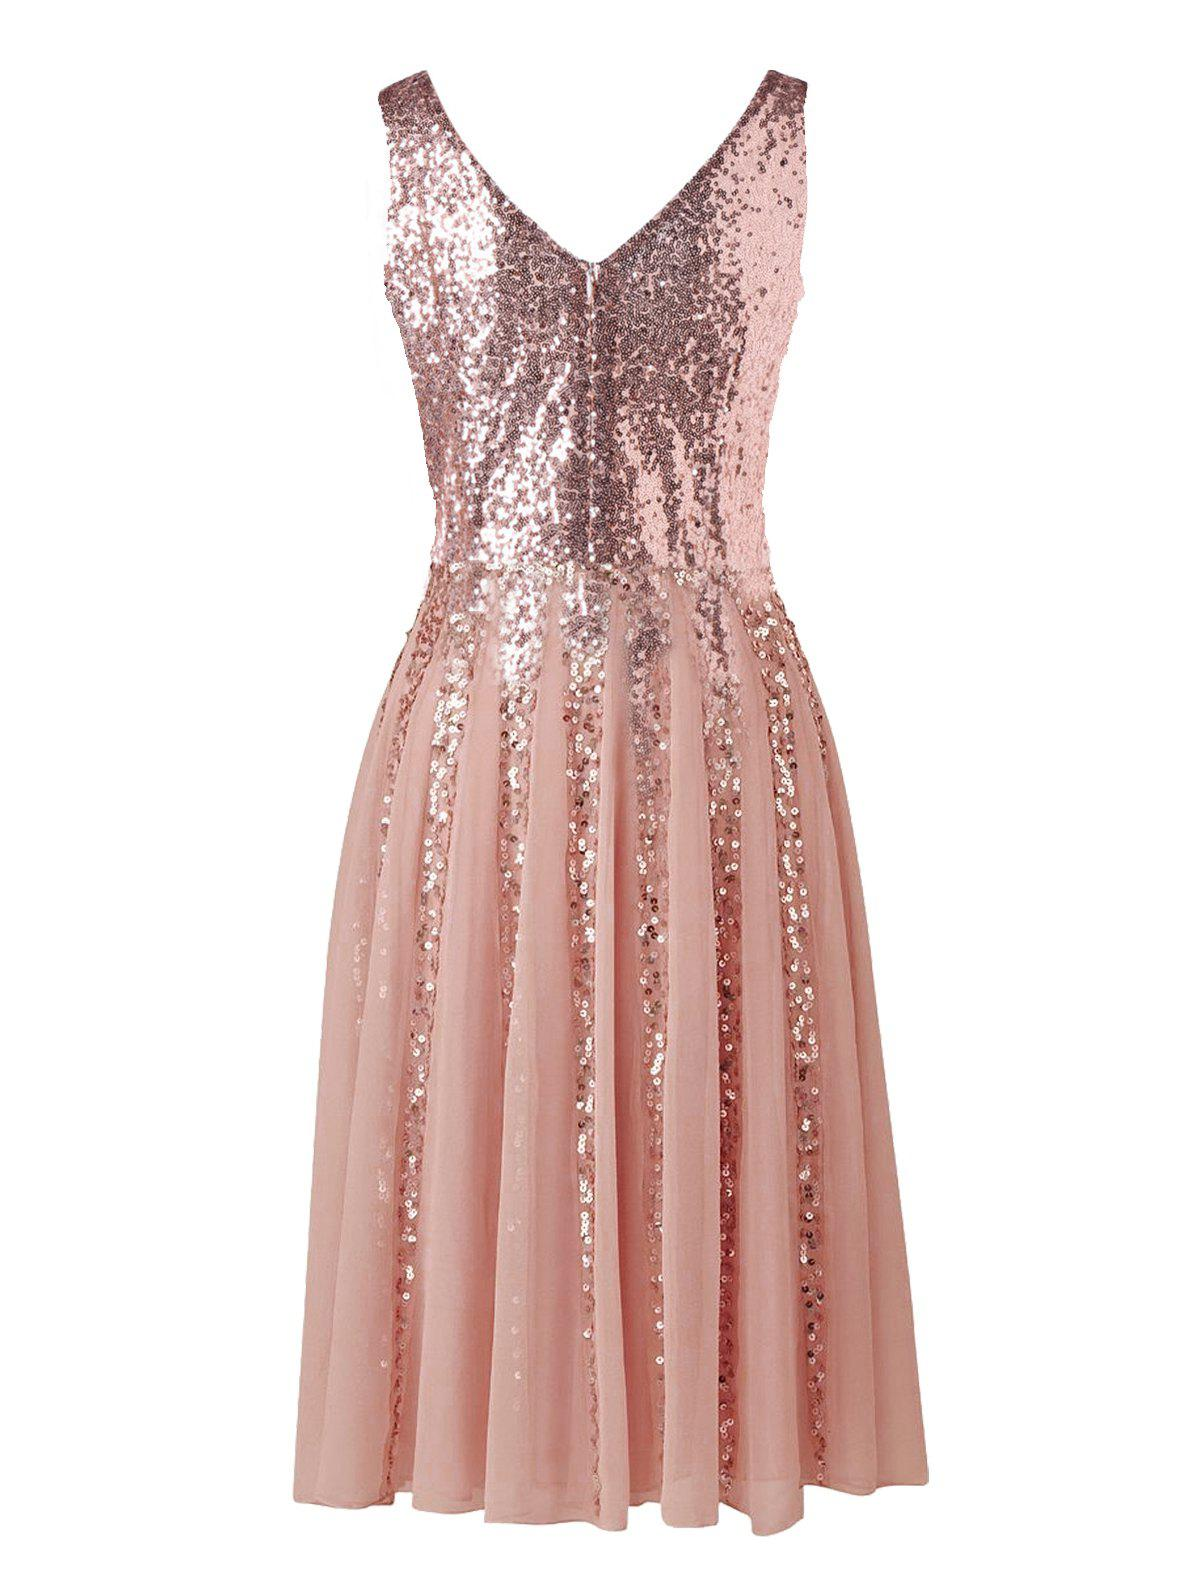 Sequined Sleeveless Chiffon Dress - PINK L